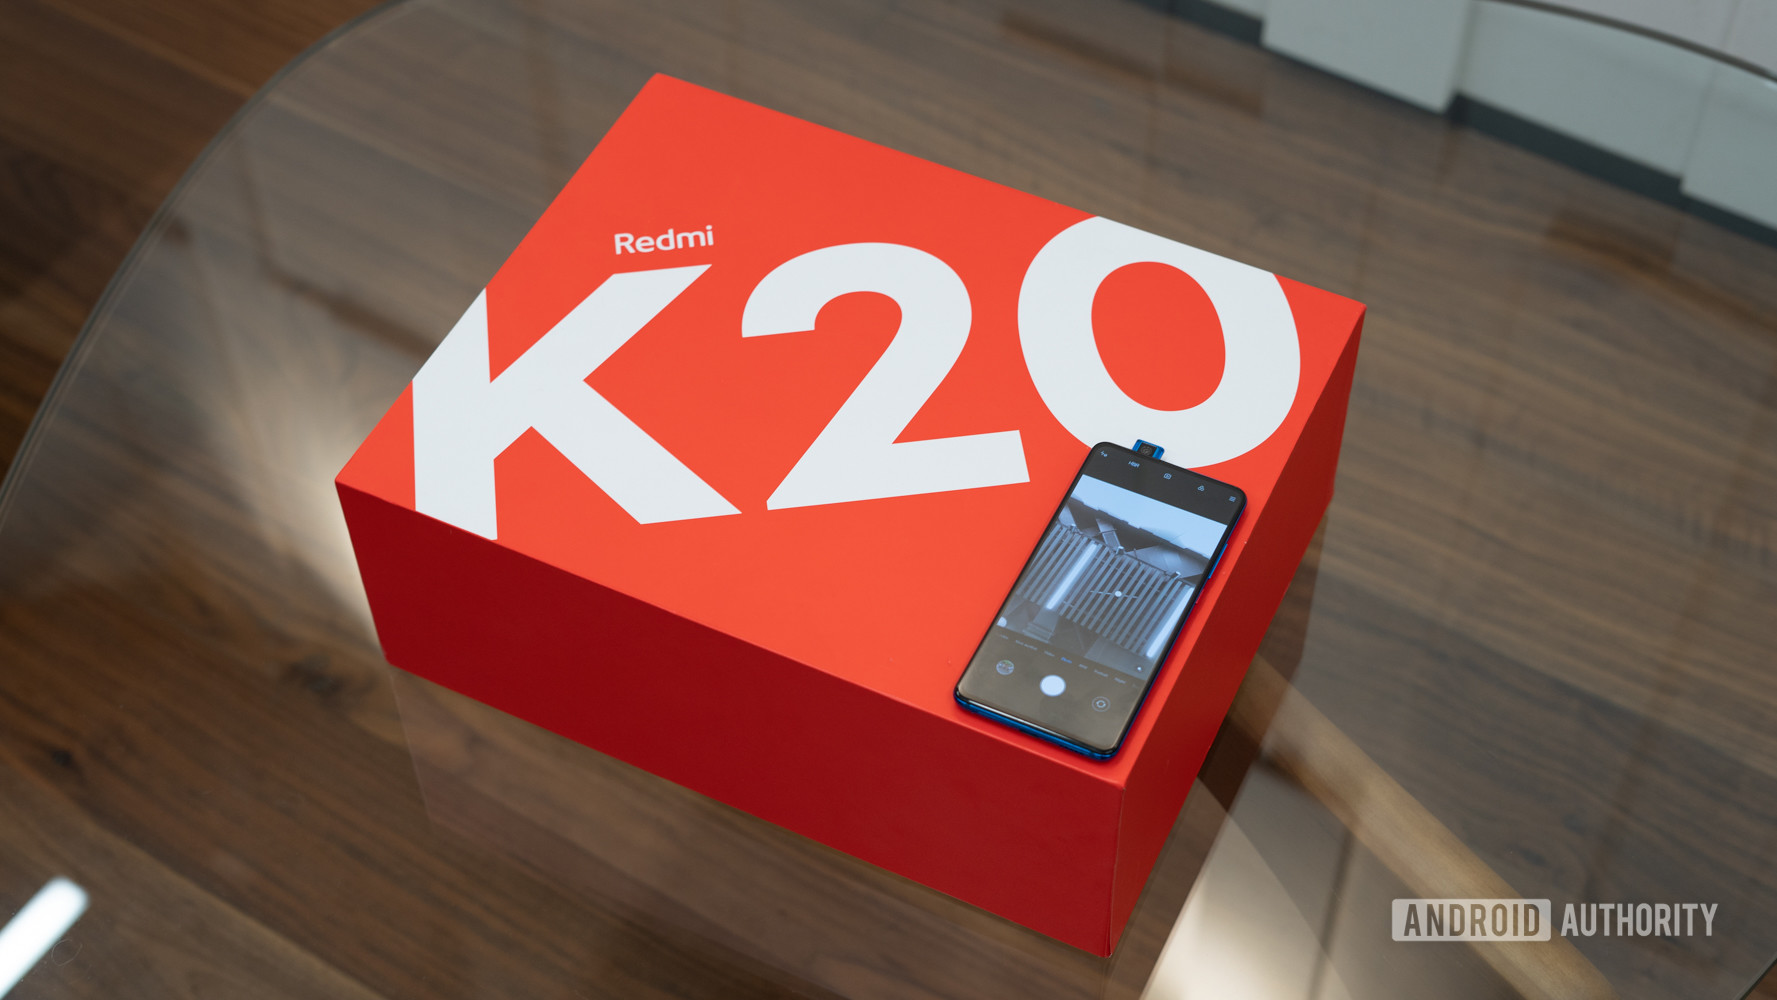 Redmi K20 -box with phone and pop up camera